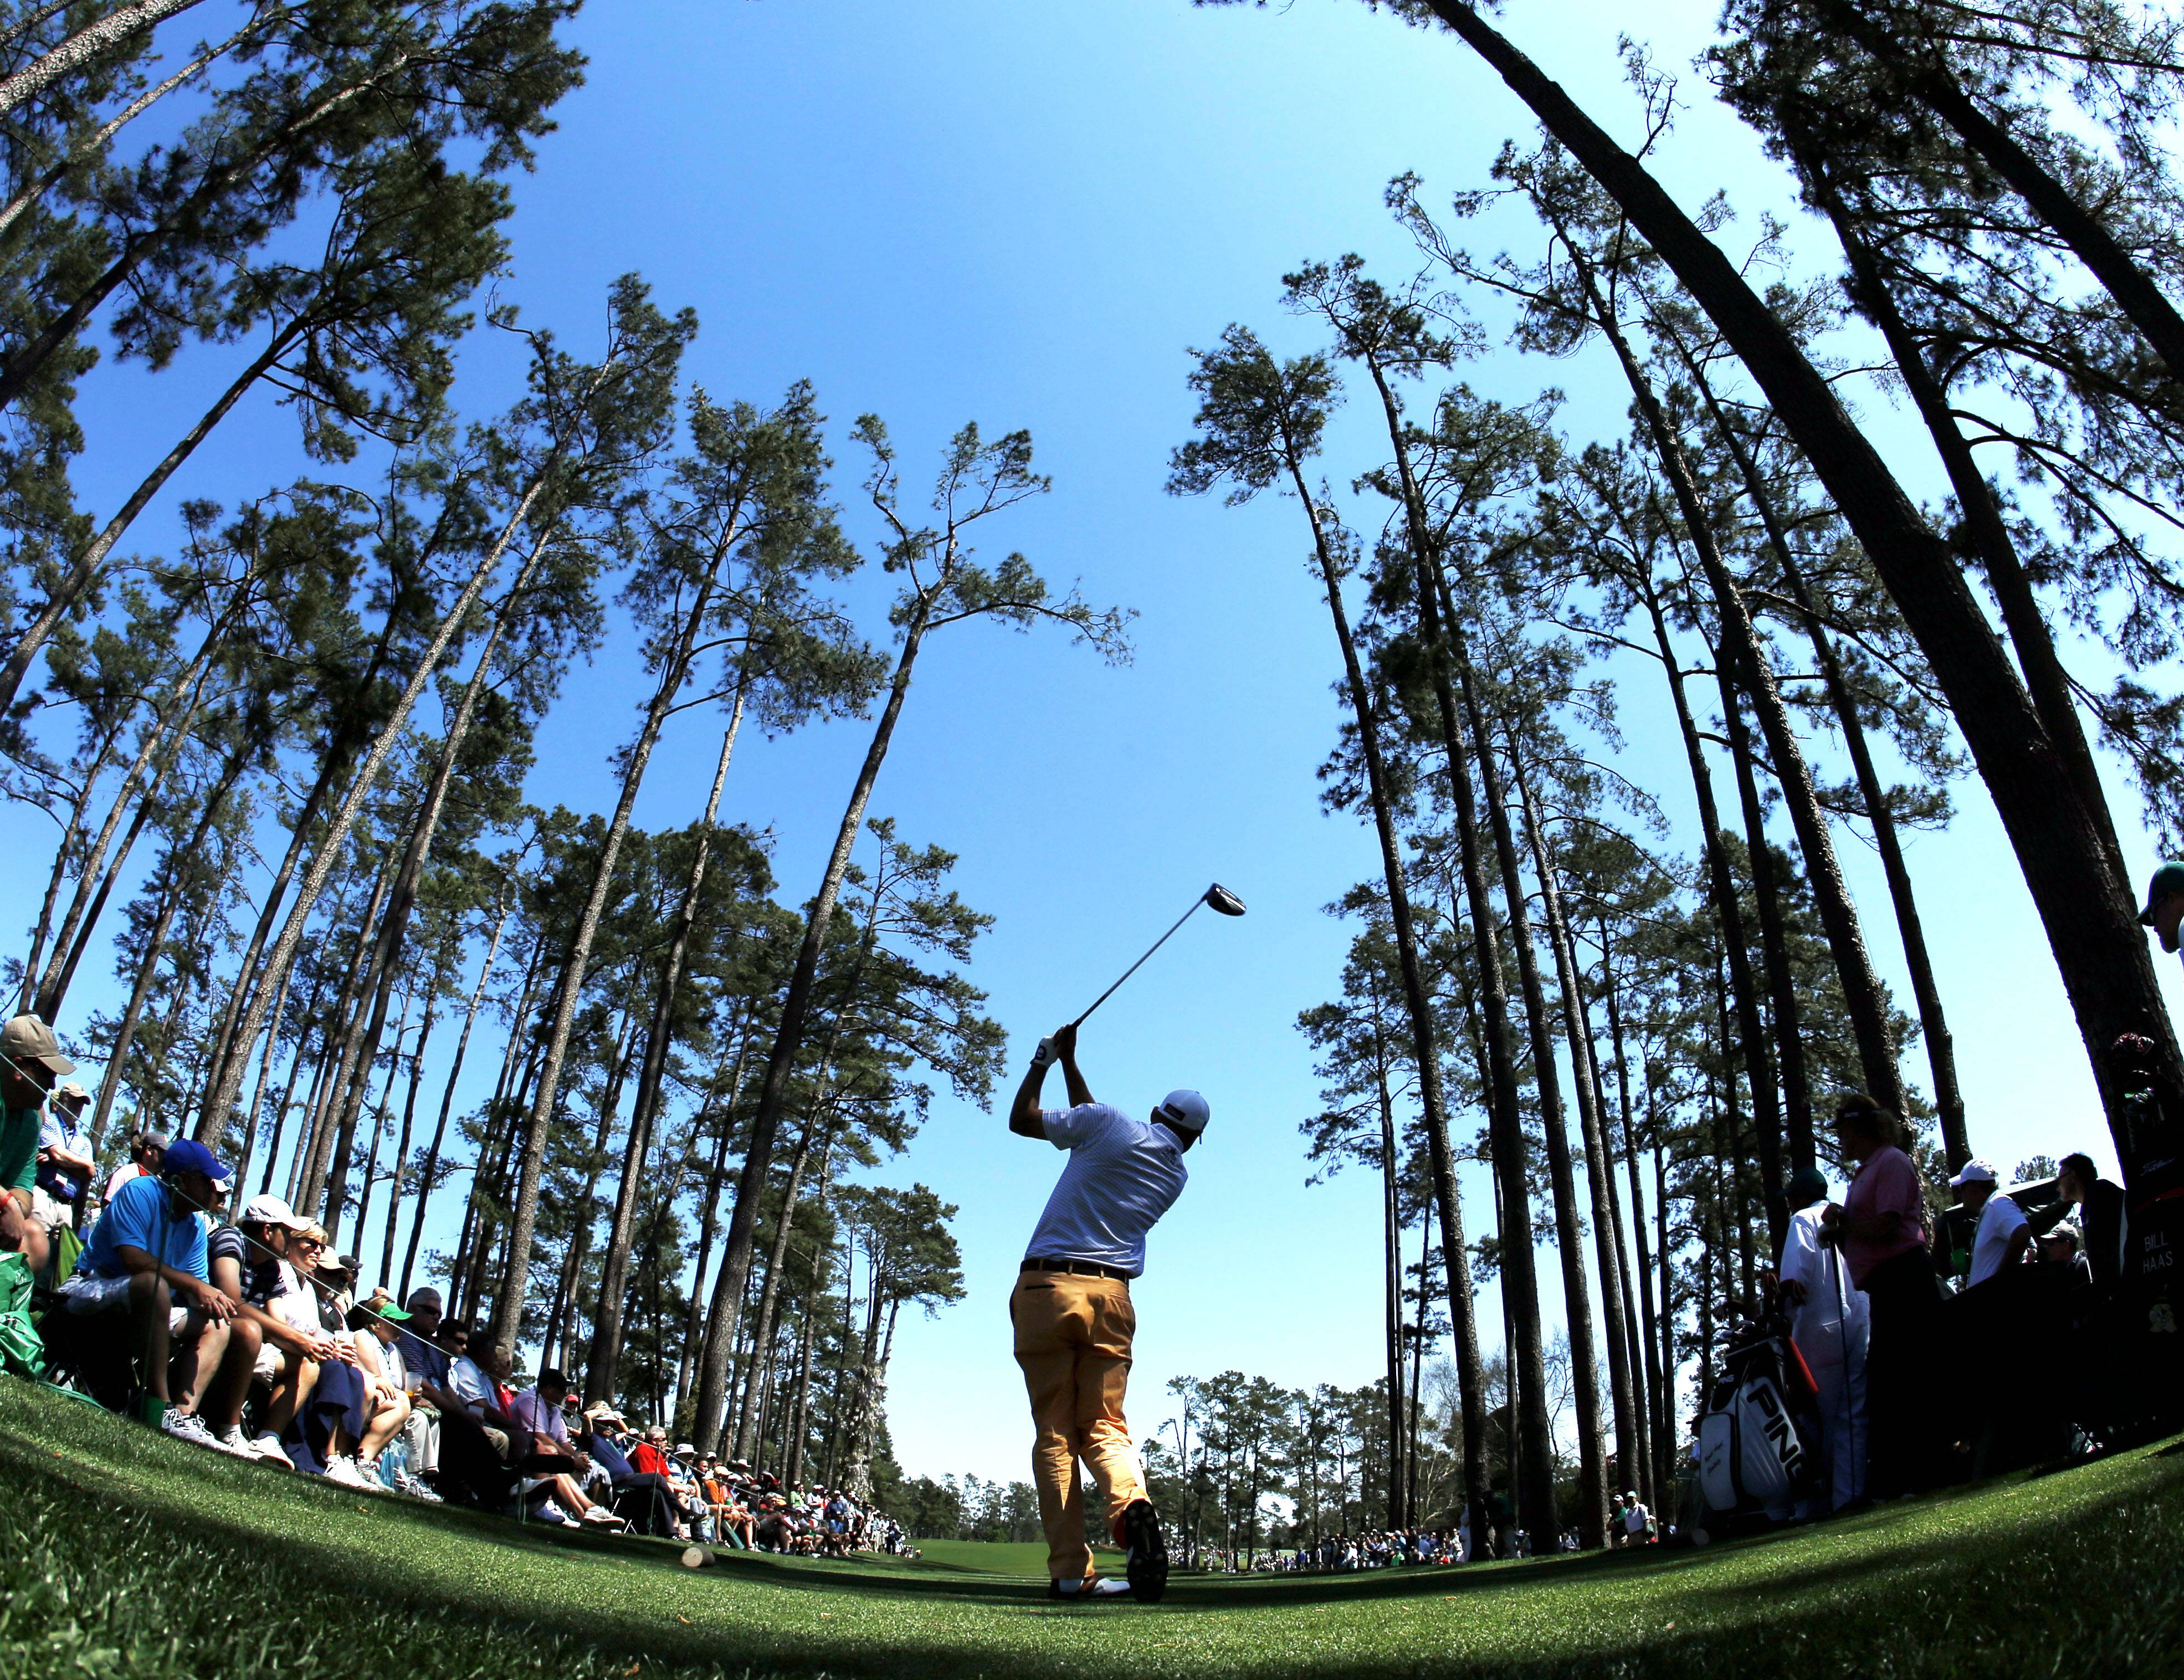 Bill Haas tees off on the 17th hole during the first round of the Masters golf tournament Thursday, April 10, 2014, in Augusta, Ga.